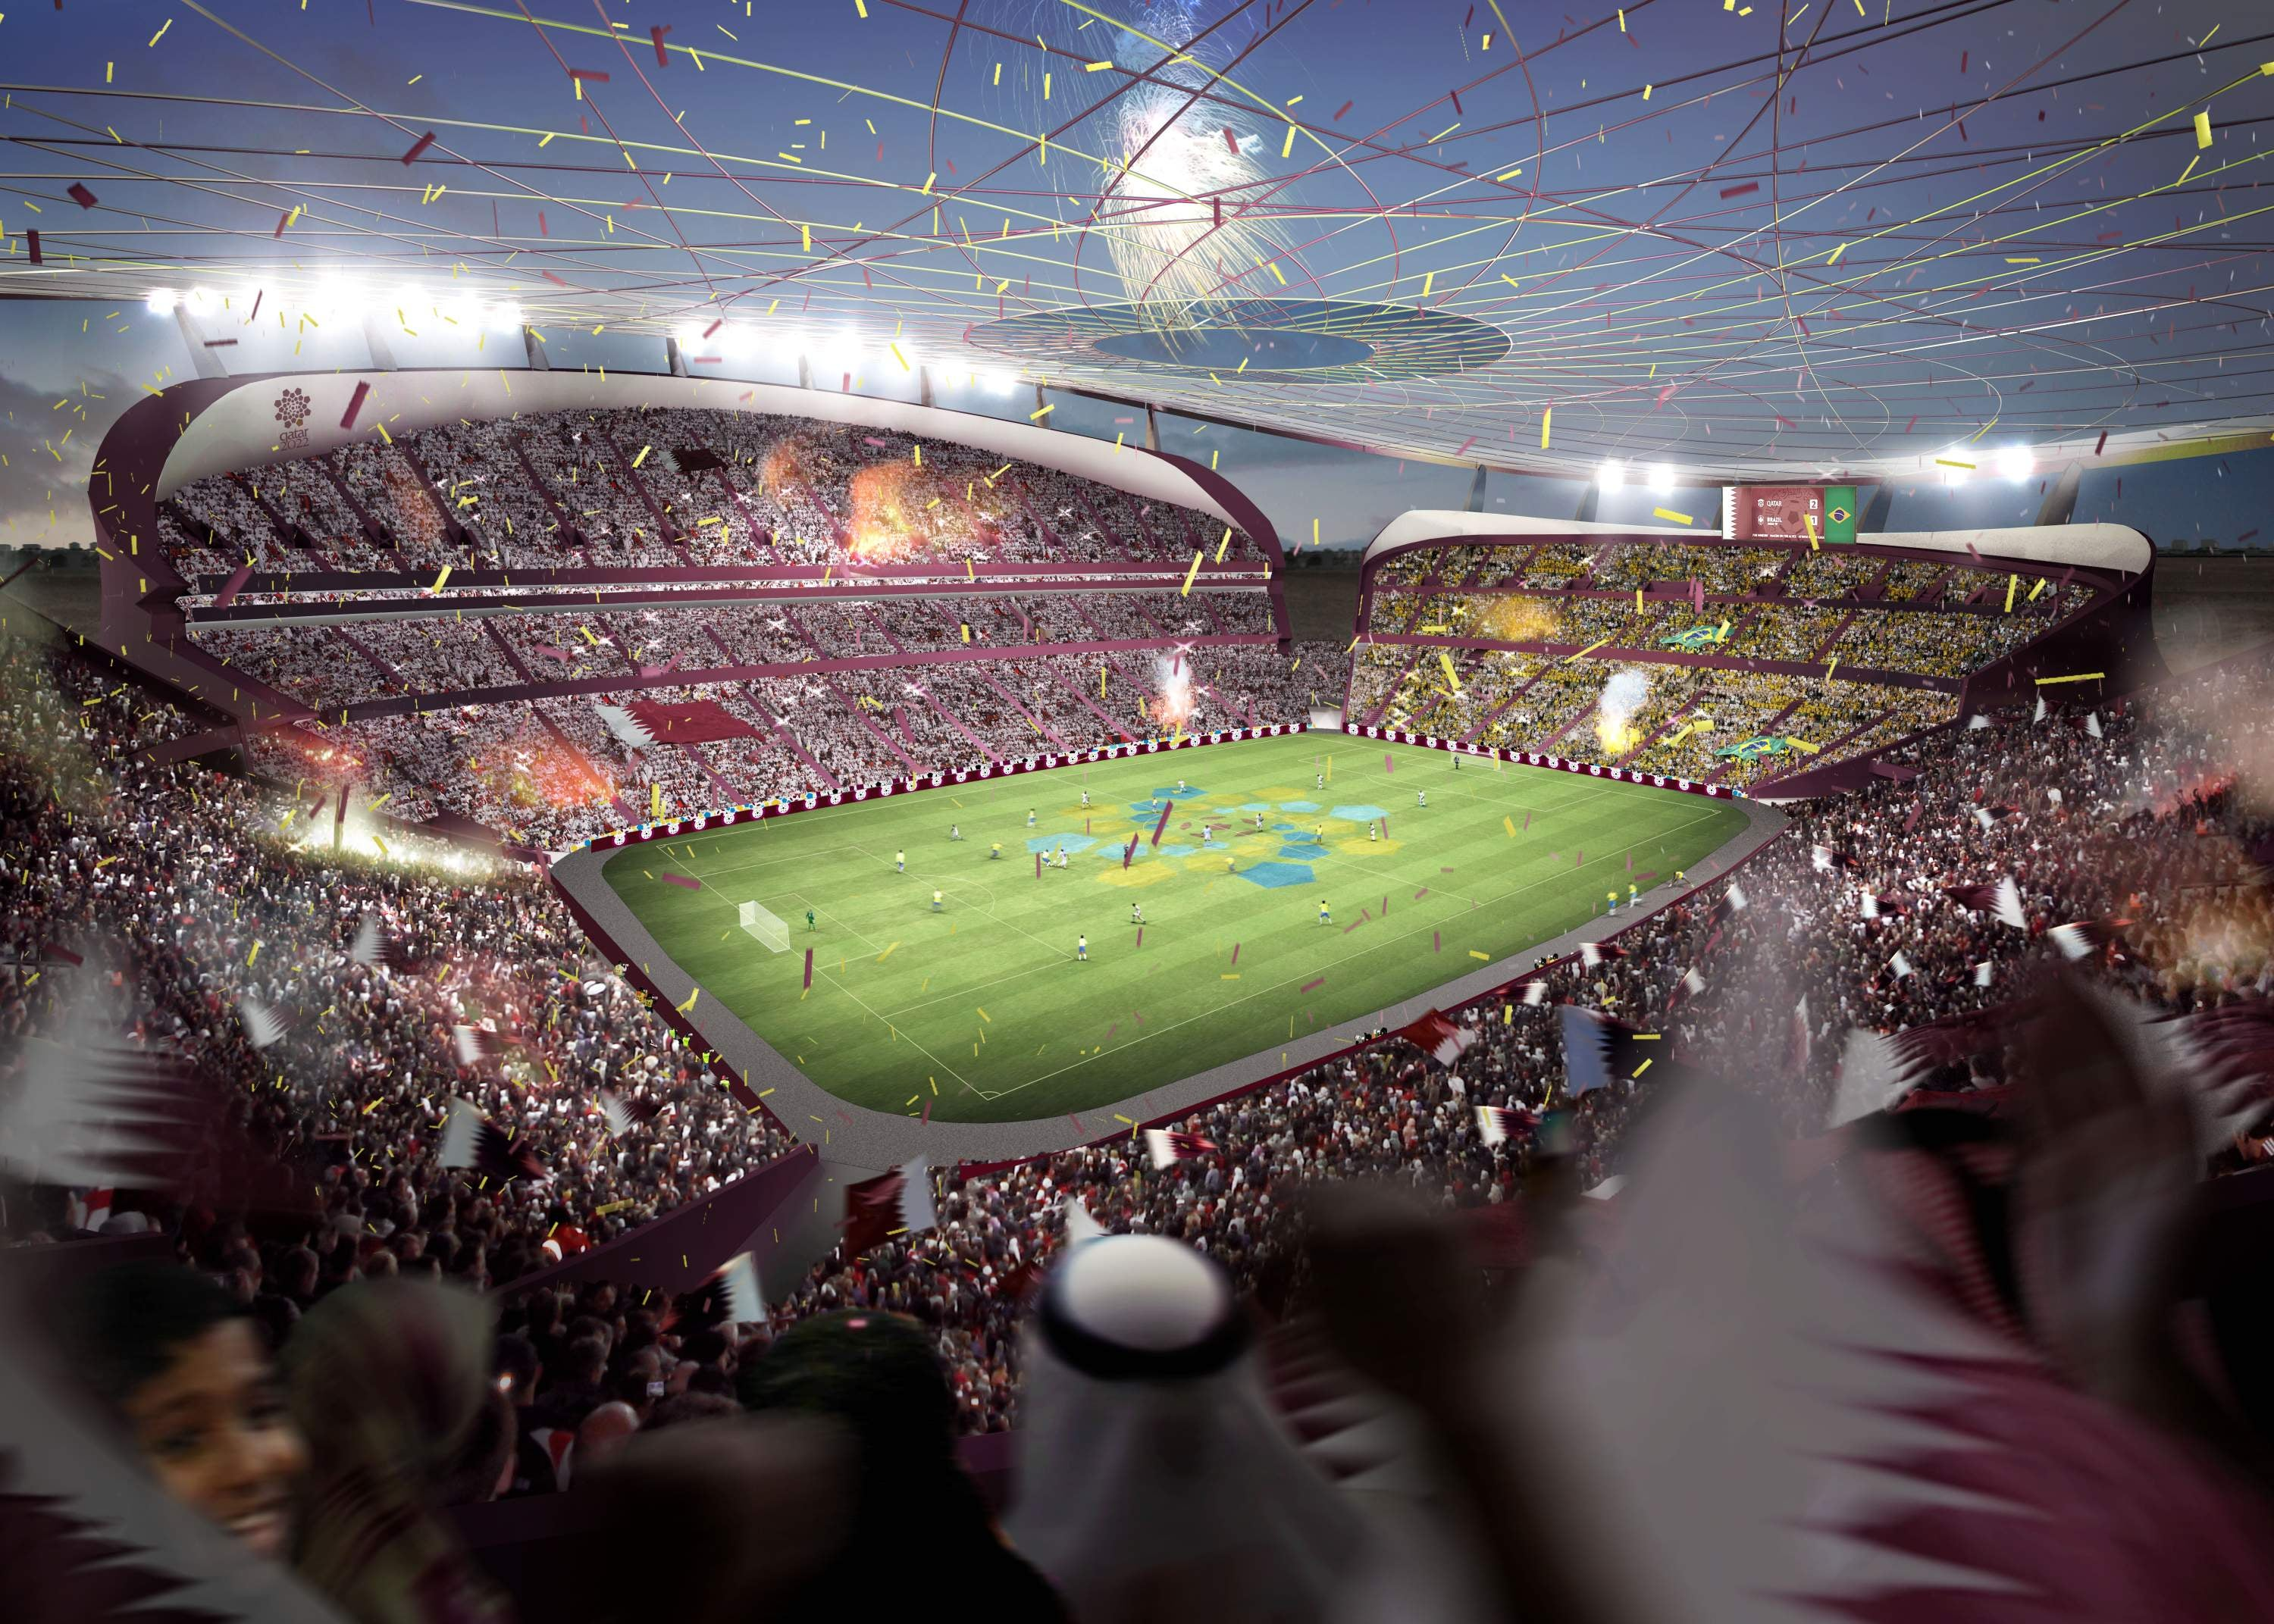 Qatar's $US45 Billion Plan to Build a Brand New City for the World Cup